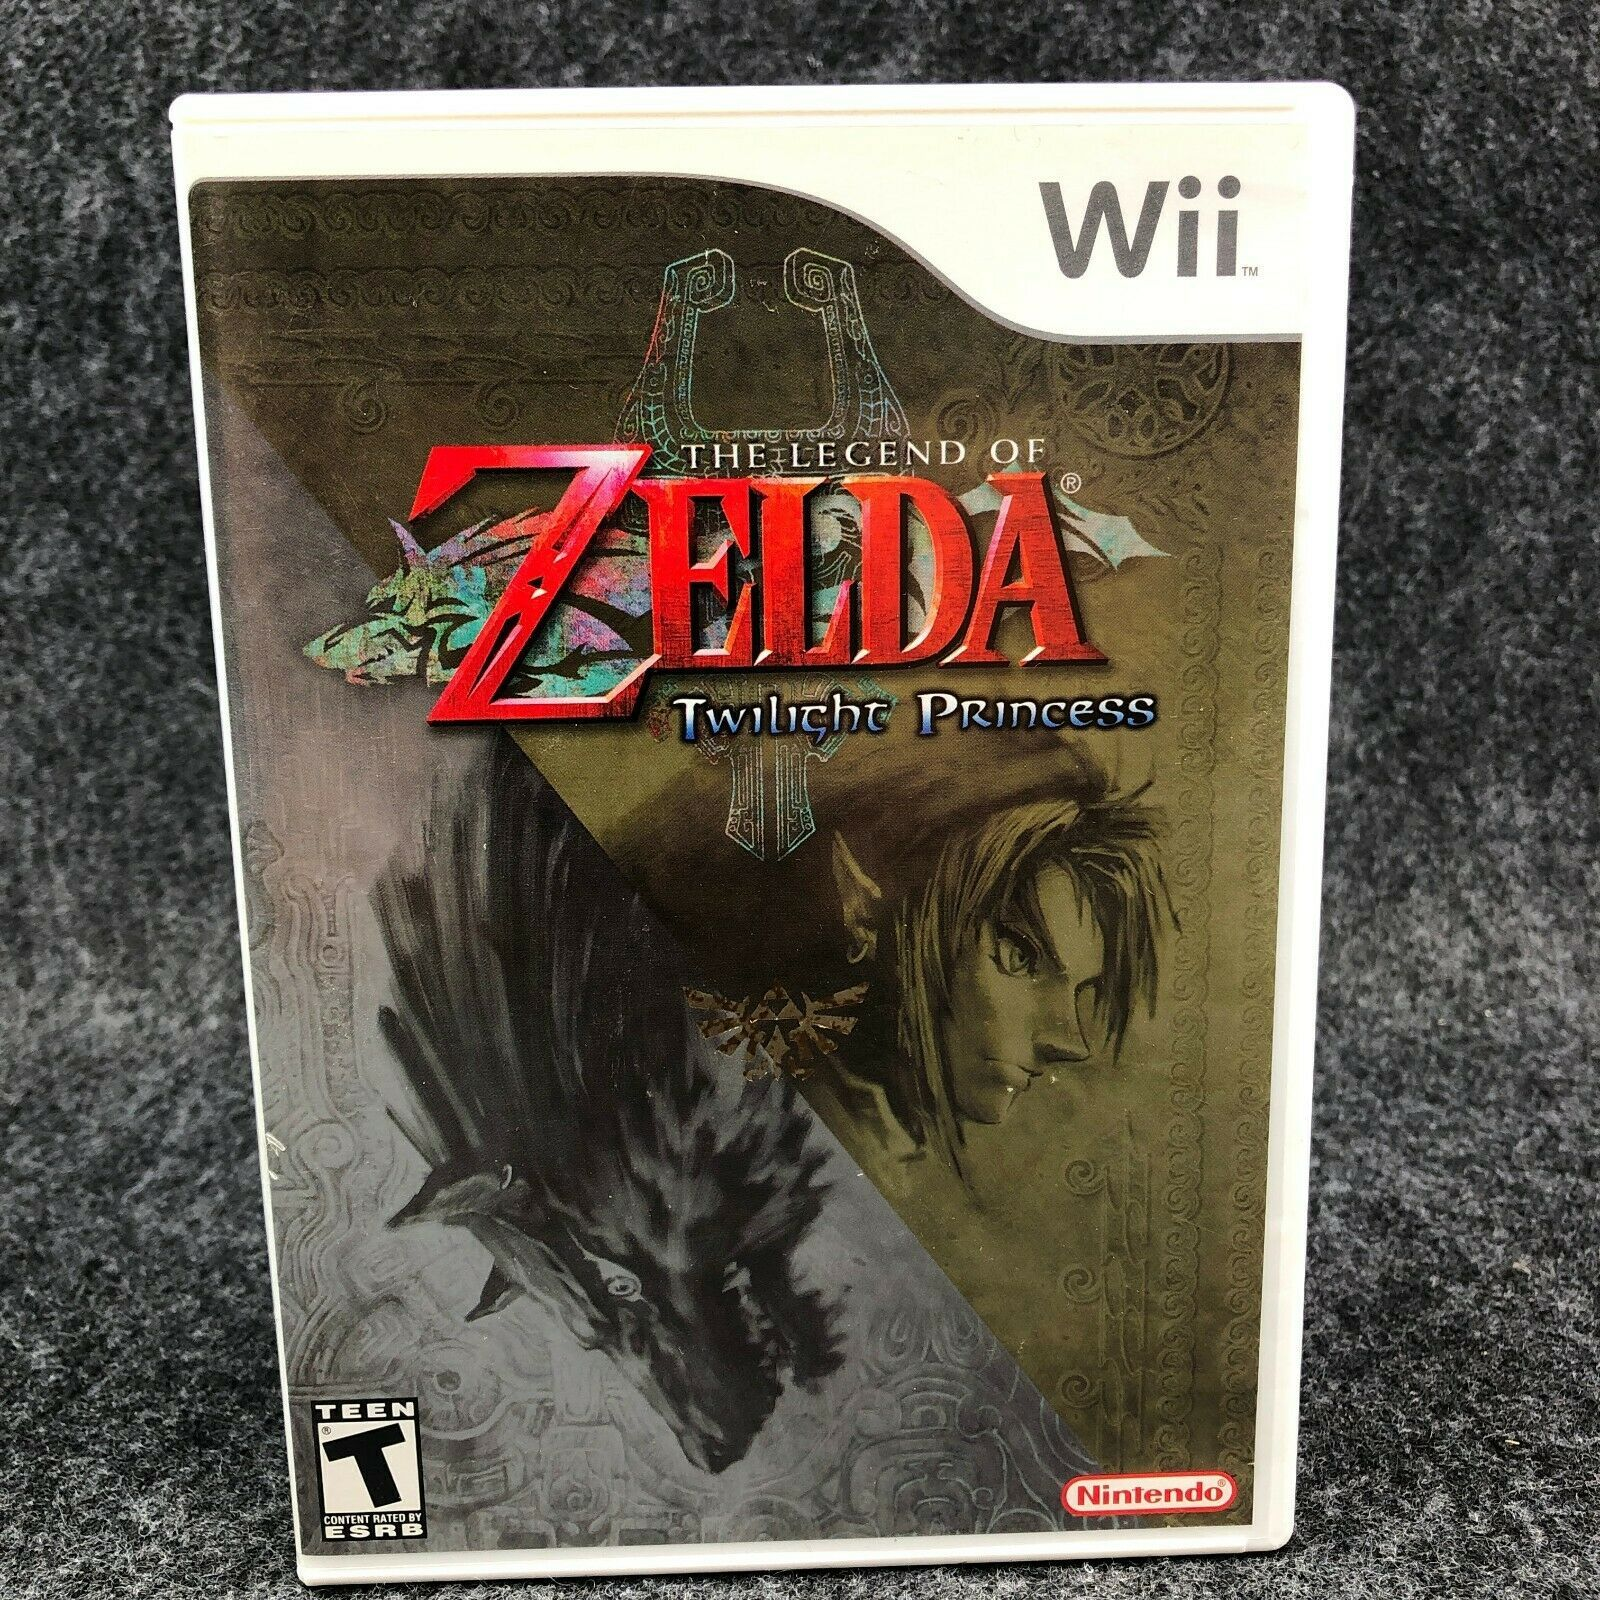 Primary image for The Legend Of Zelda: Twilight Princess Nintendo Wii, Complete CIB Game